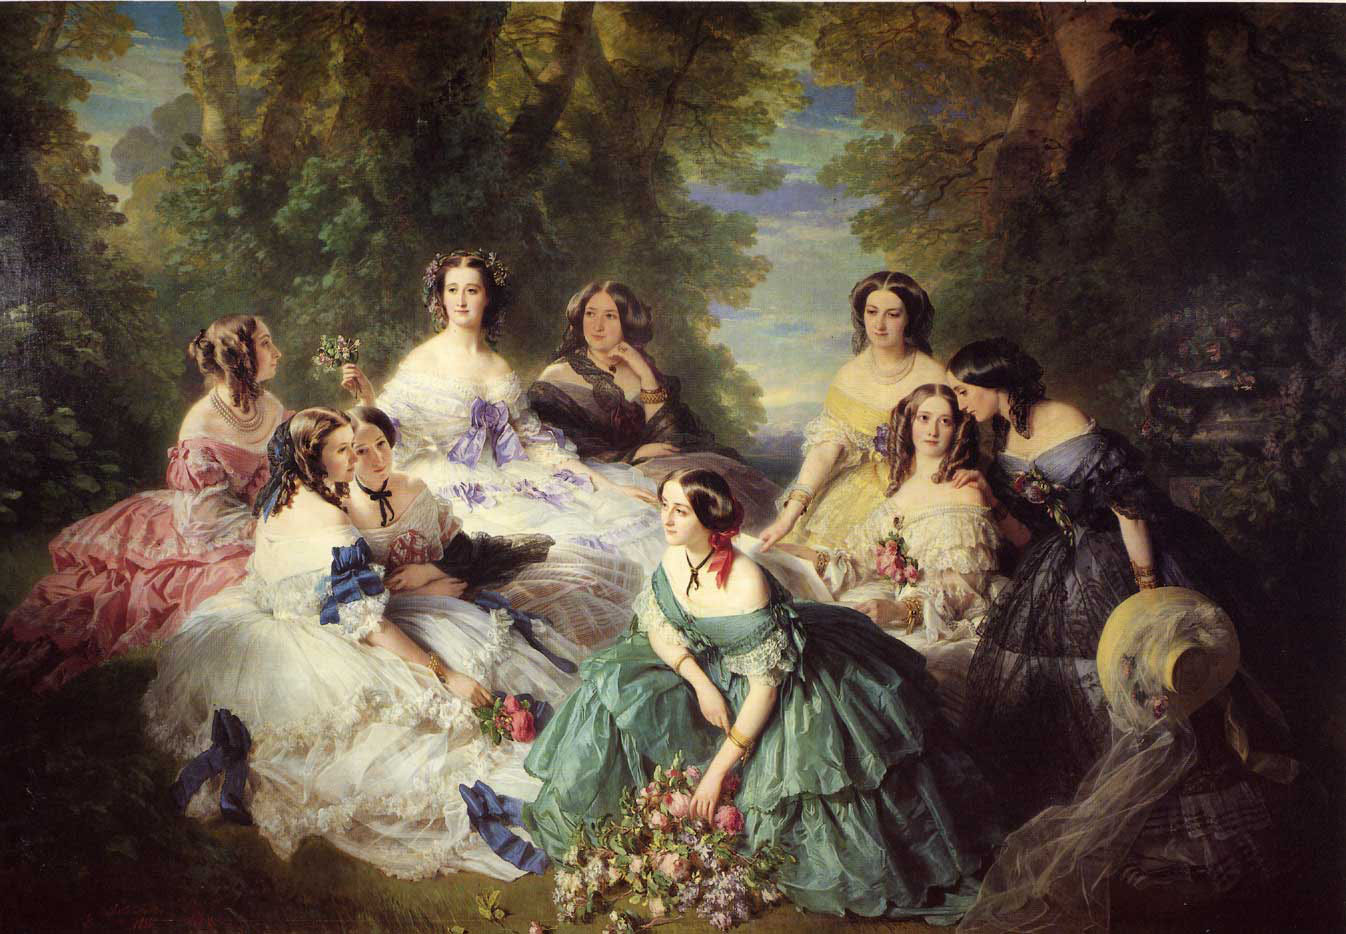 Empress Eugenie along with other ladies wearing cashmere made dresses.